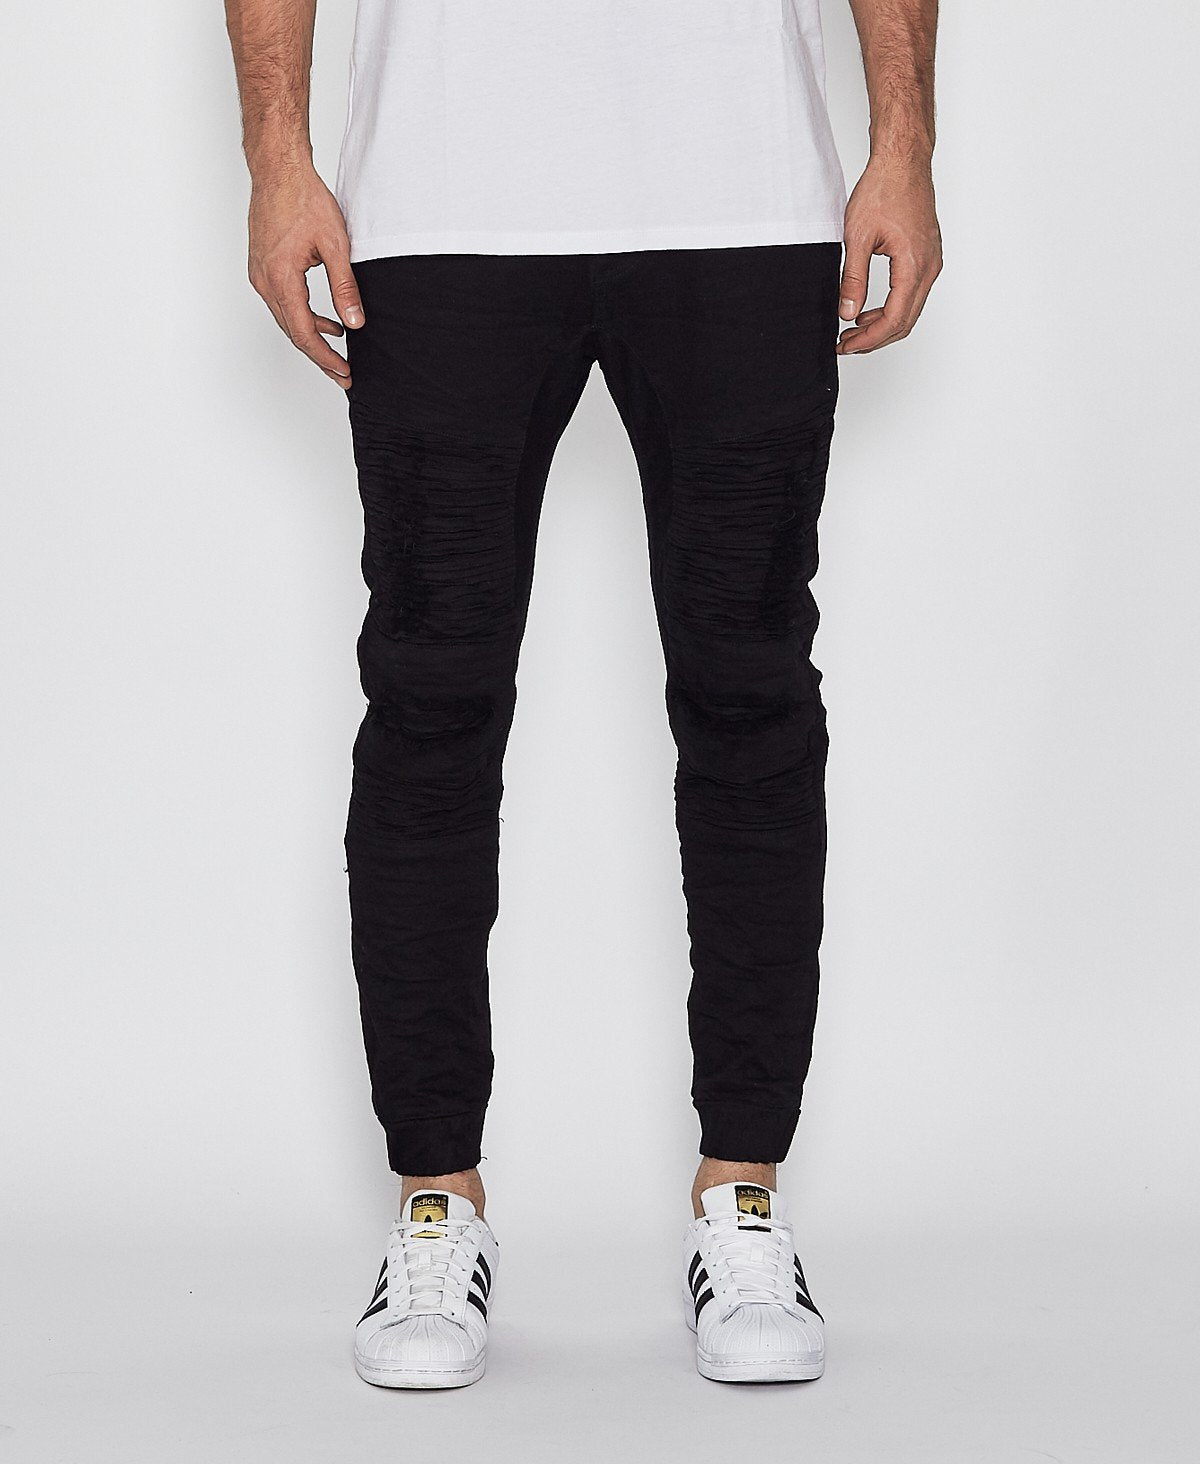 NxP Hell Cat Pant - Black